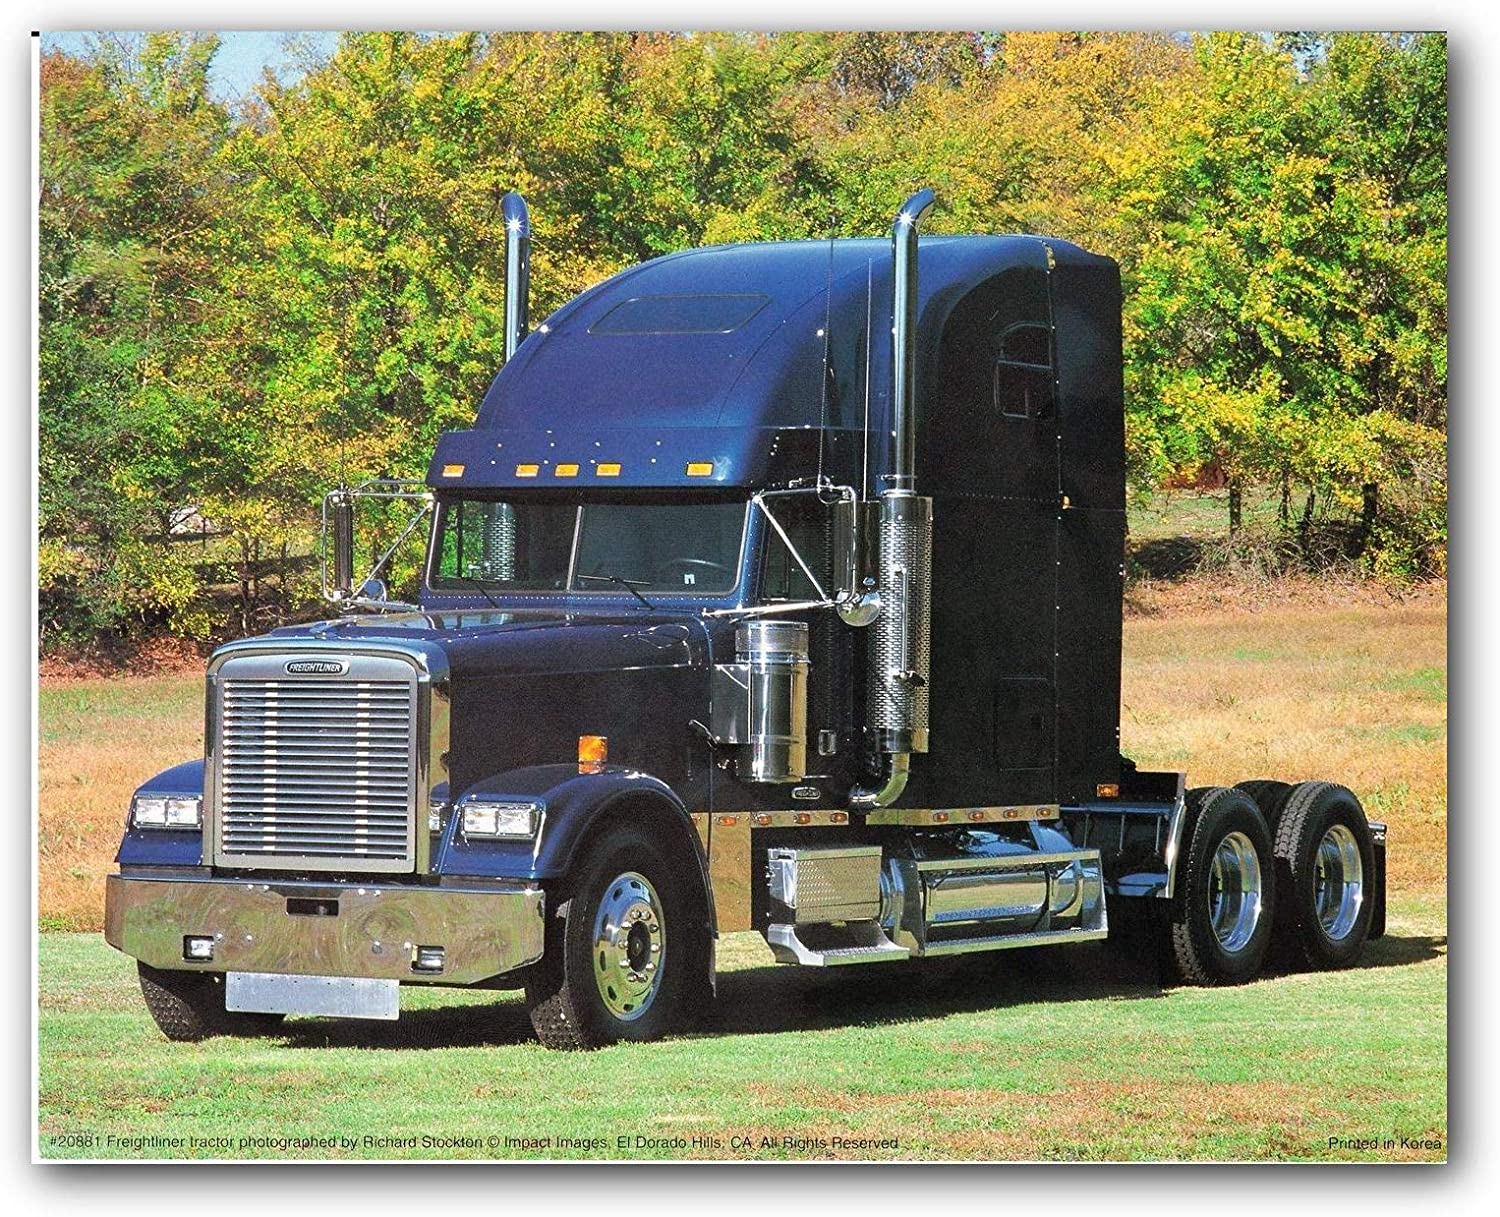 Vintage Truck Picture Freightliner Blue Diesel Old Classic Wall Décor Art Print Poster (16x20)